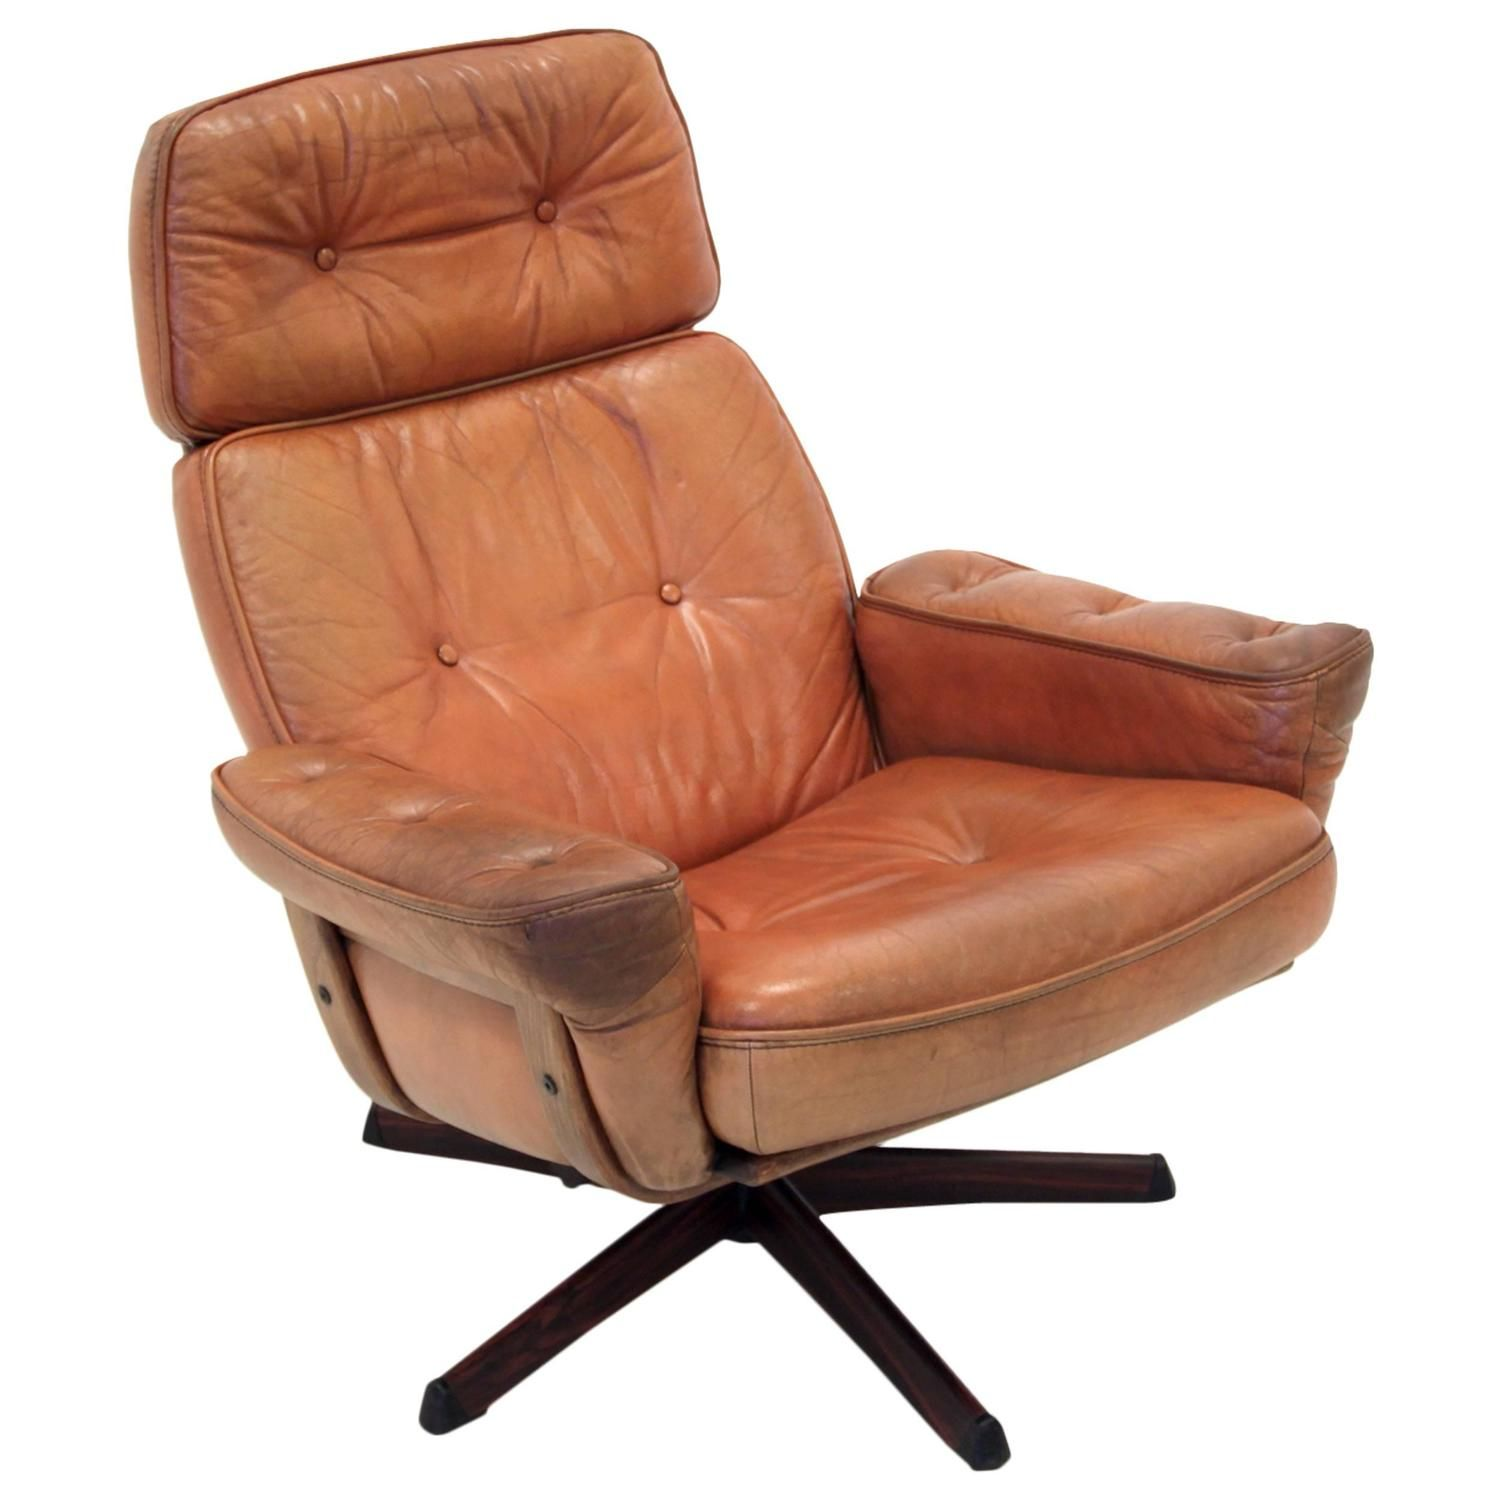 images of mid century chairs | Swedish Mid Century Lounge Chair at 1stdibs